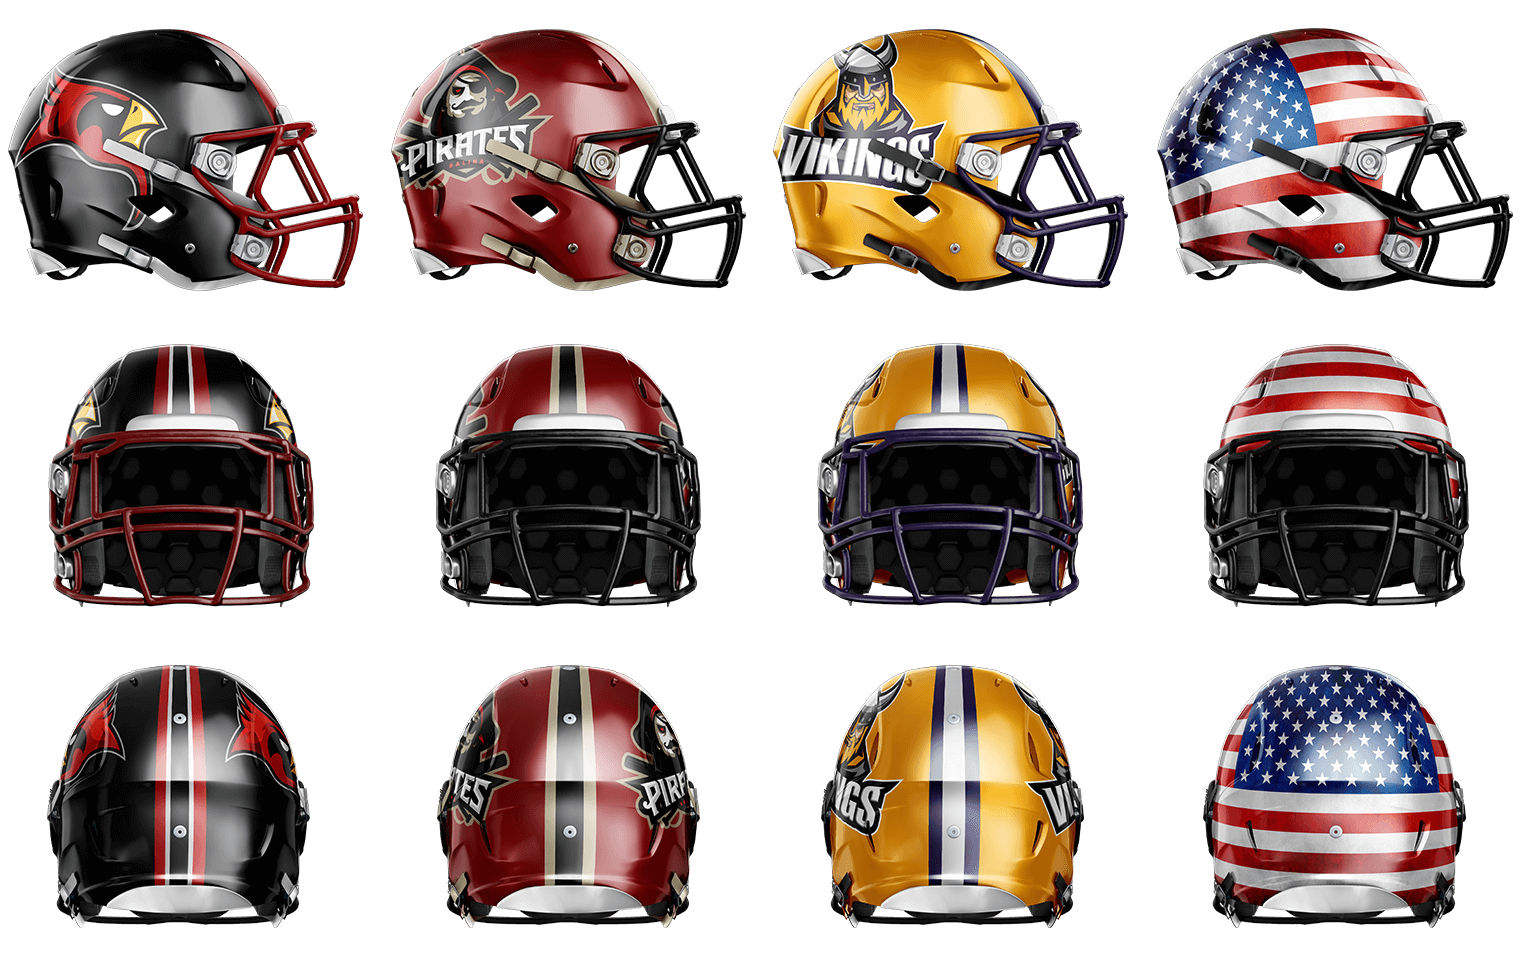 NFL helmets Photoshop Mockup Template | Football uniforms ...